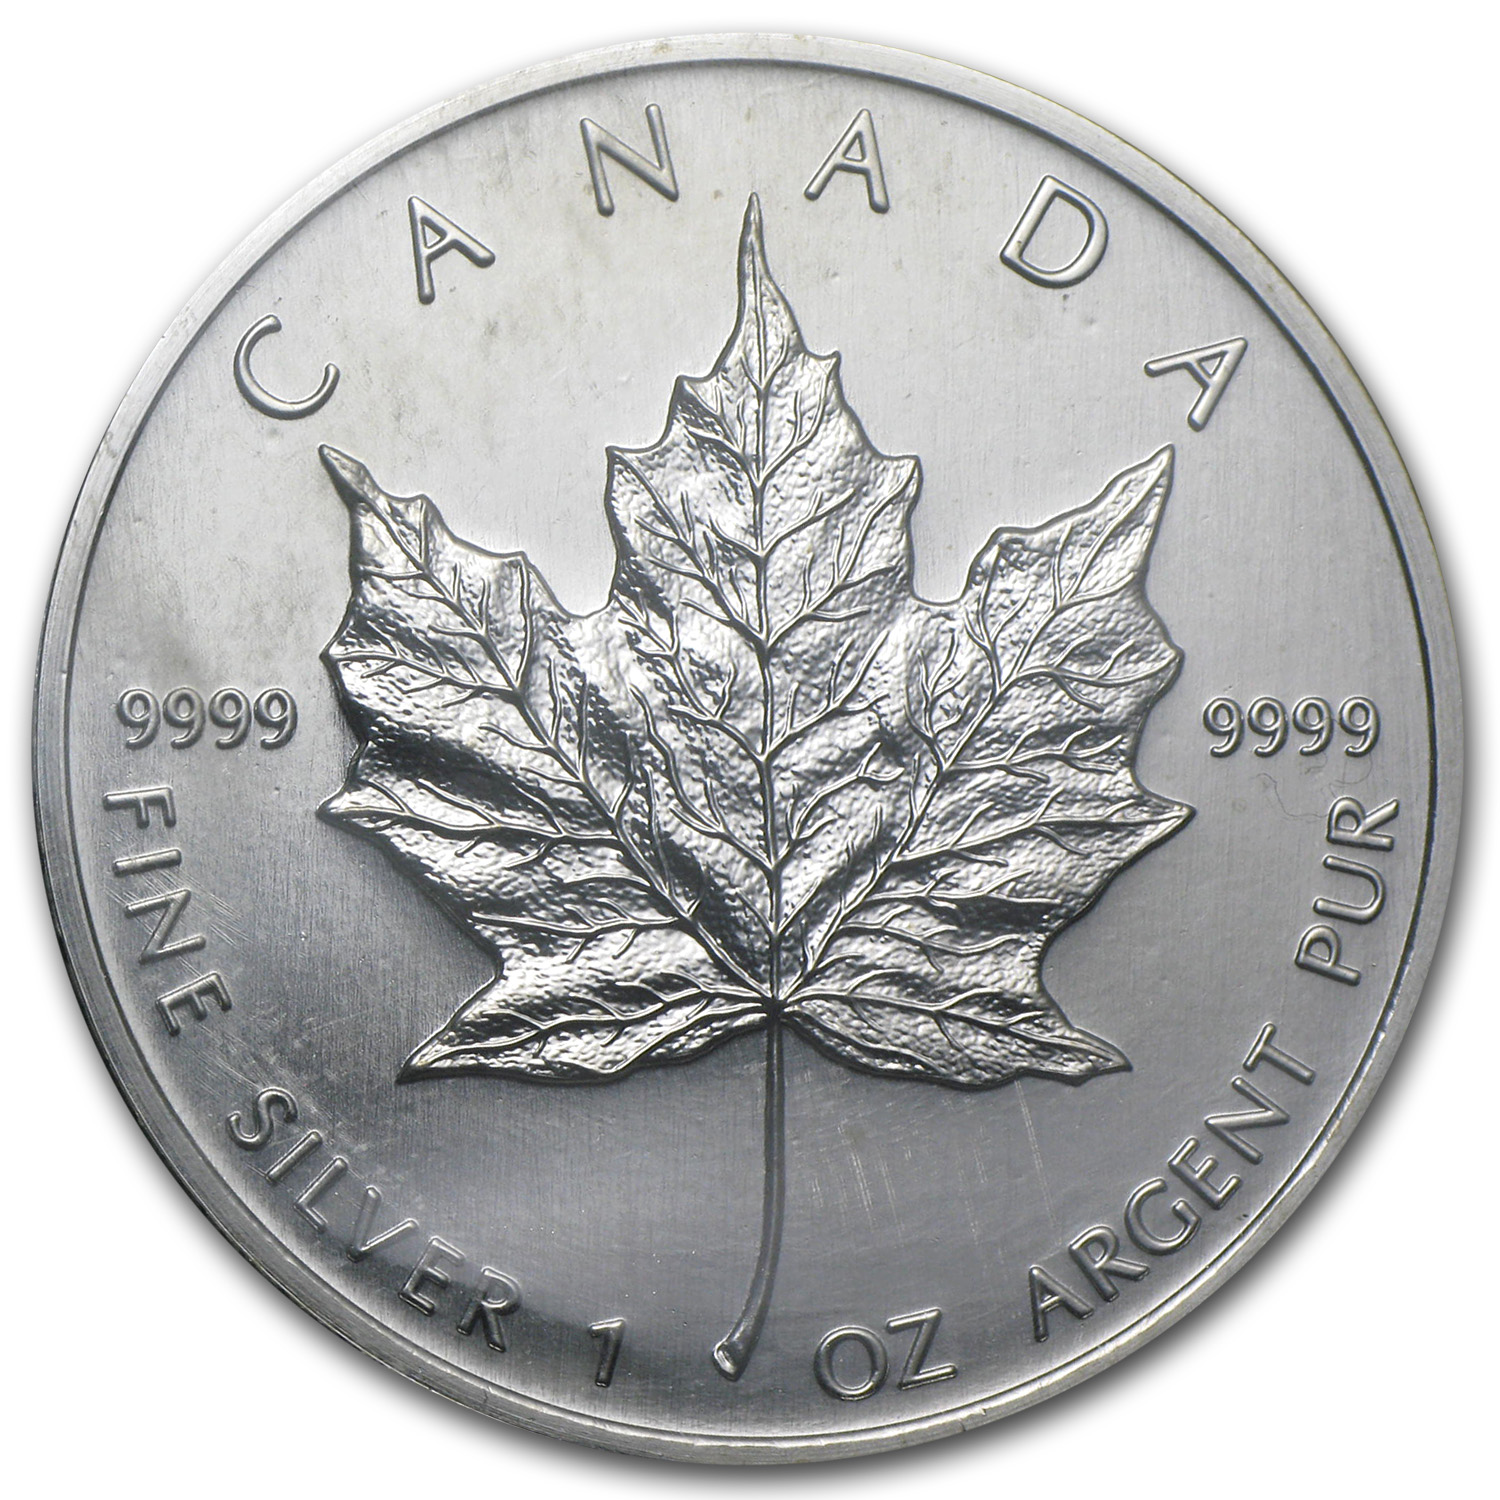 2003 Canada 1 oz Silver Maple Leaf BU